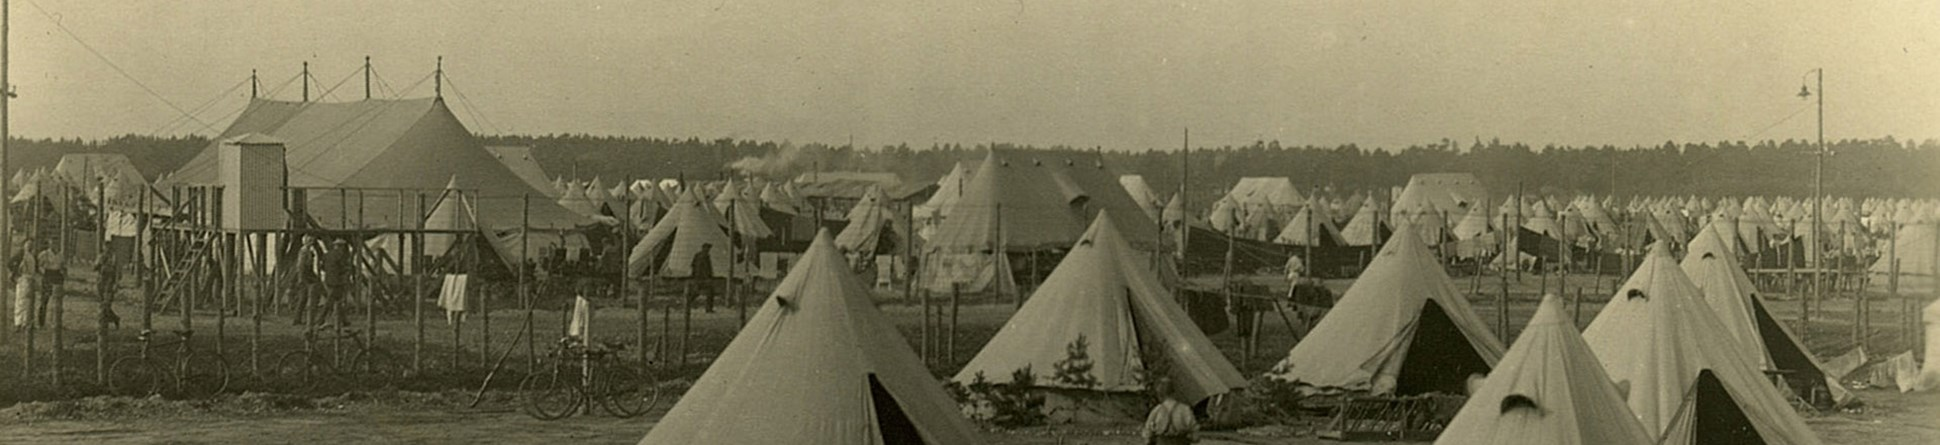 First World War Prisoner of War camp housed in canvas bell tents and large communal tents.